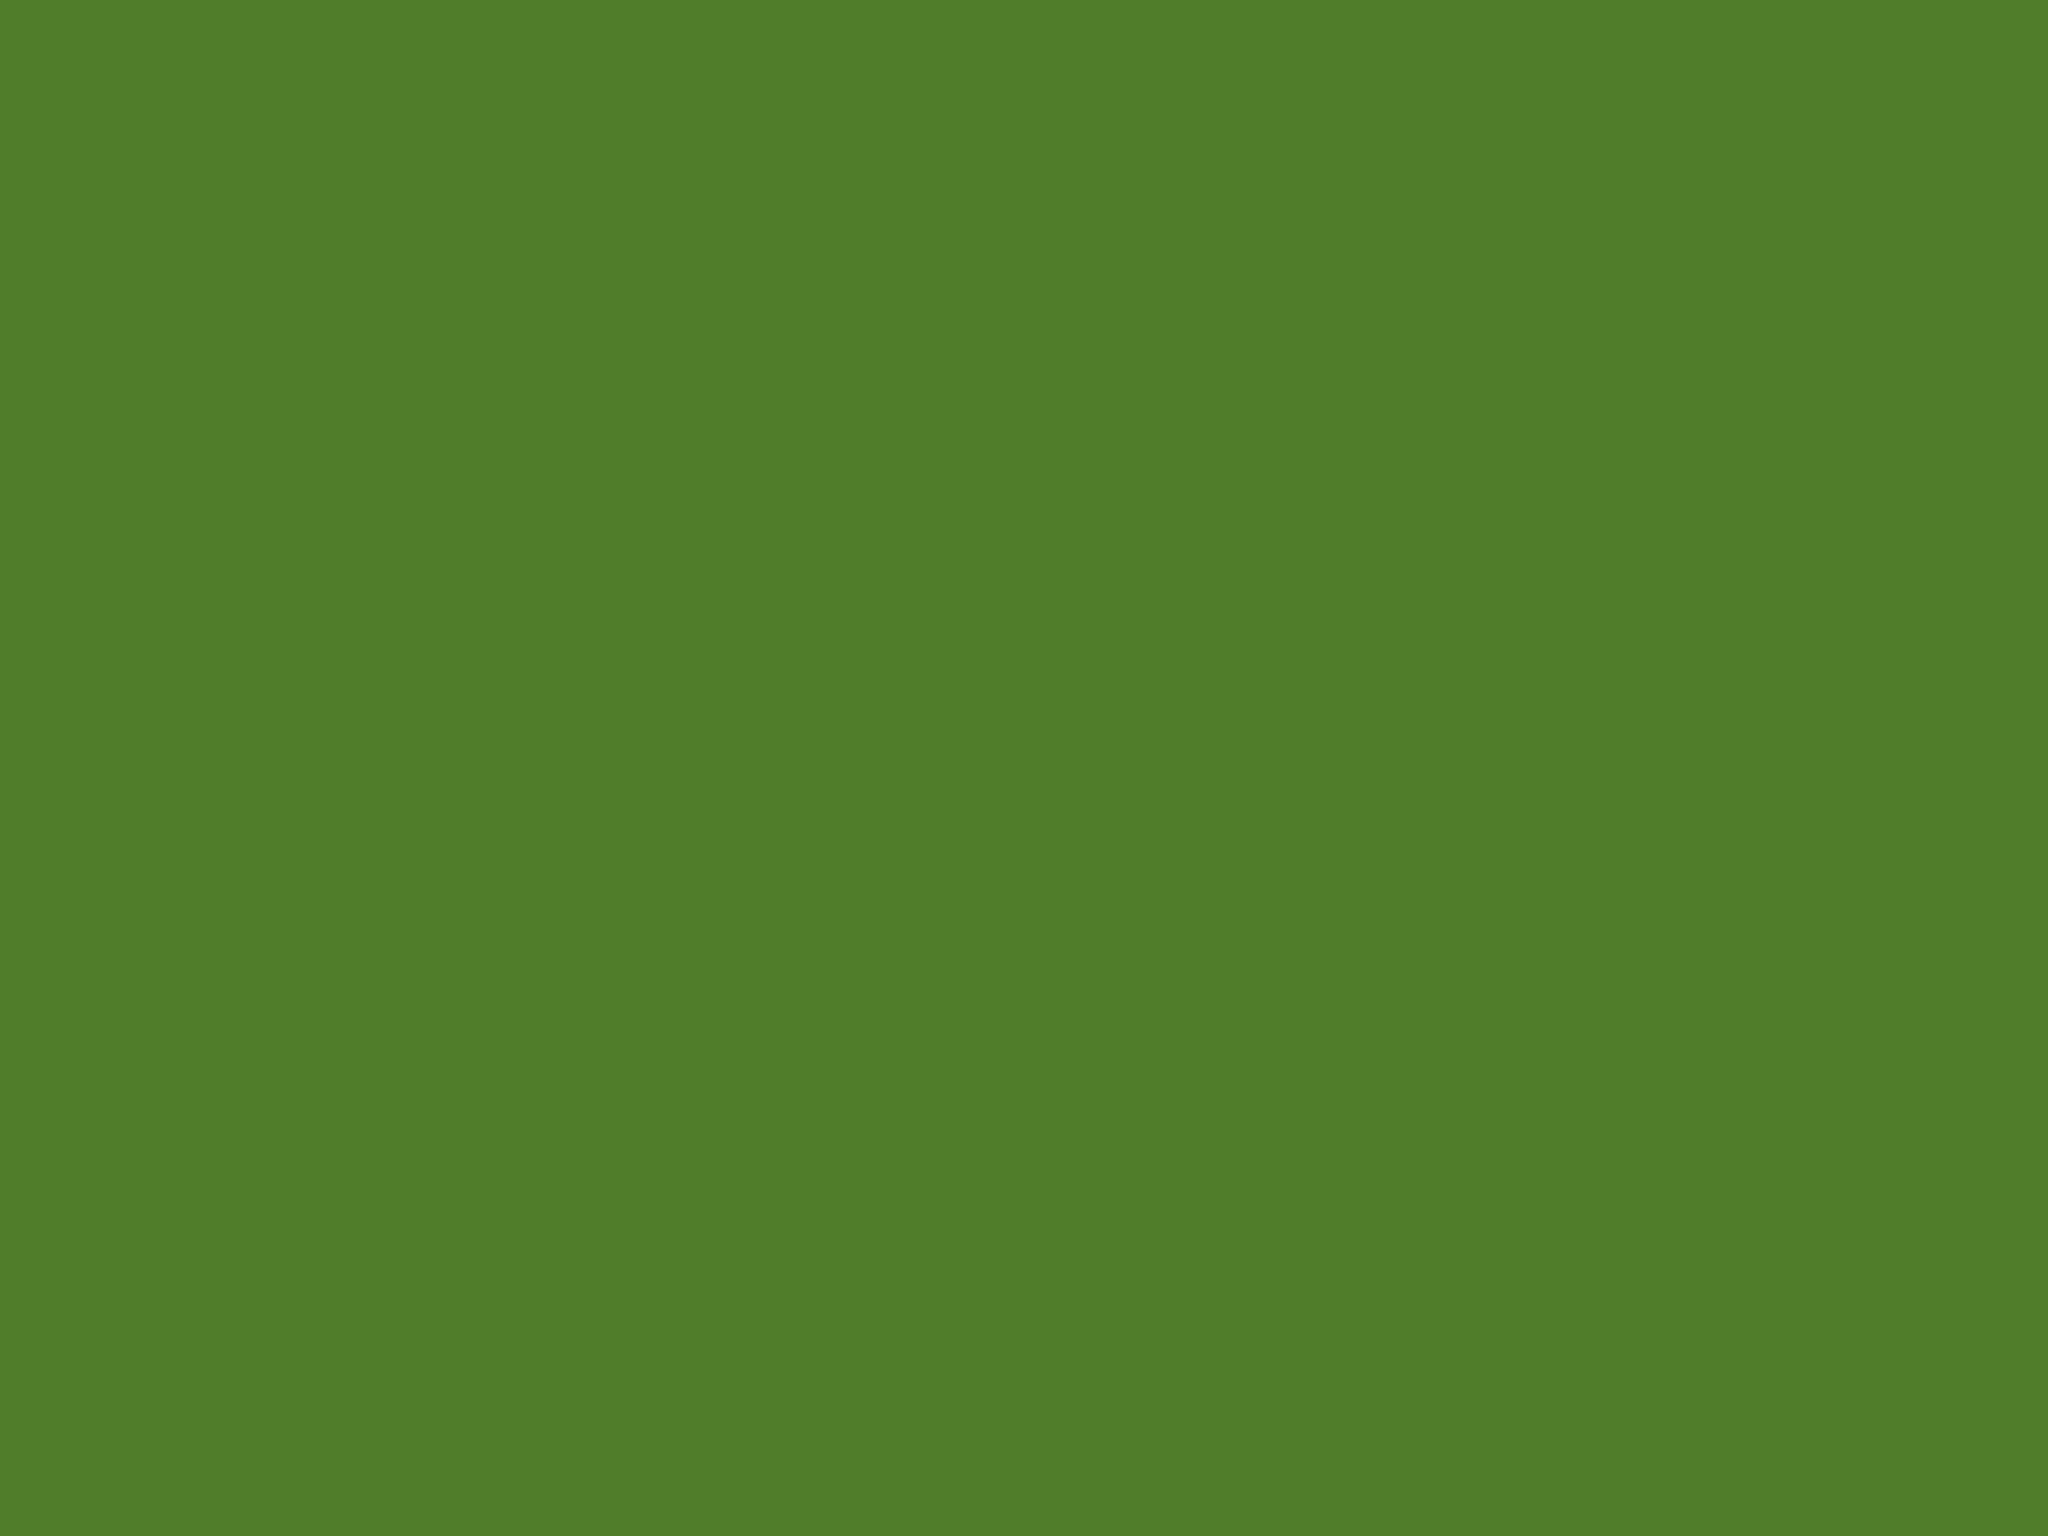 2048x1536 Sap Green Solid Color Background